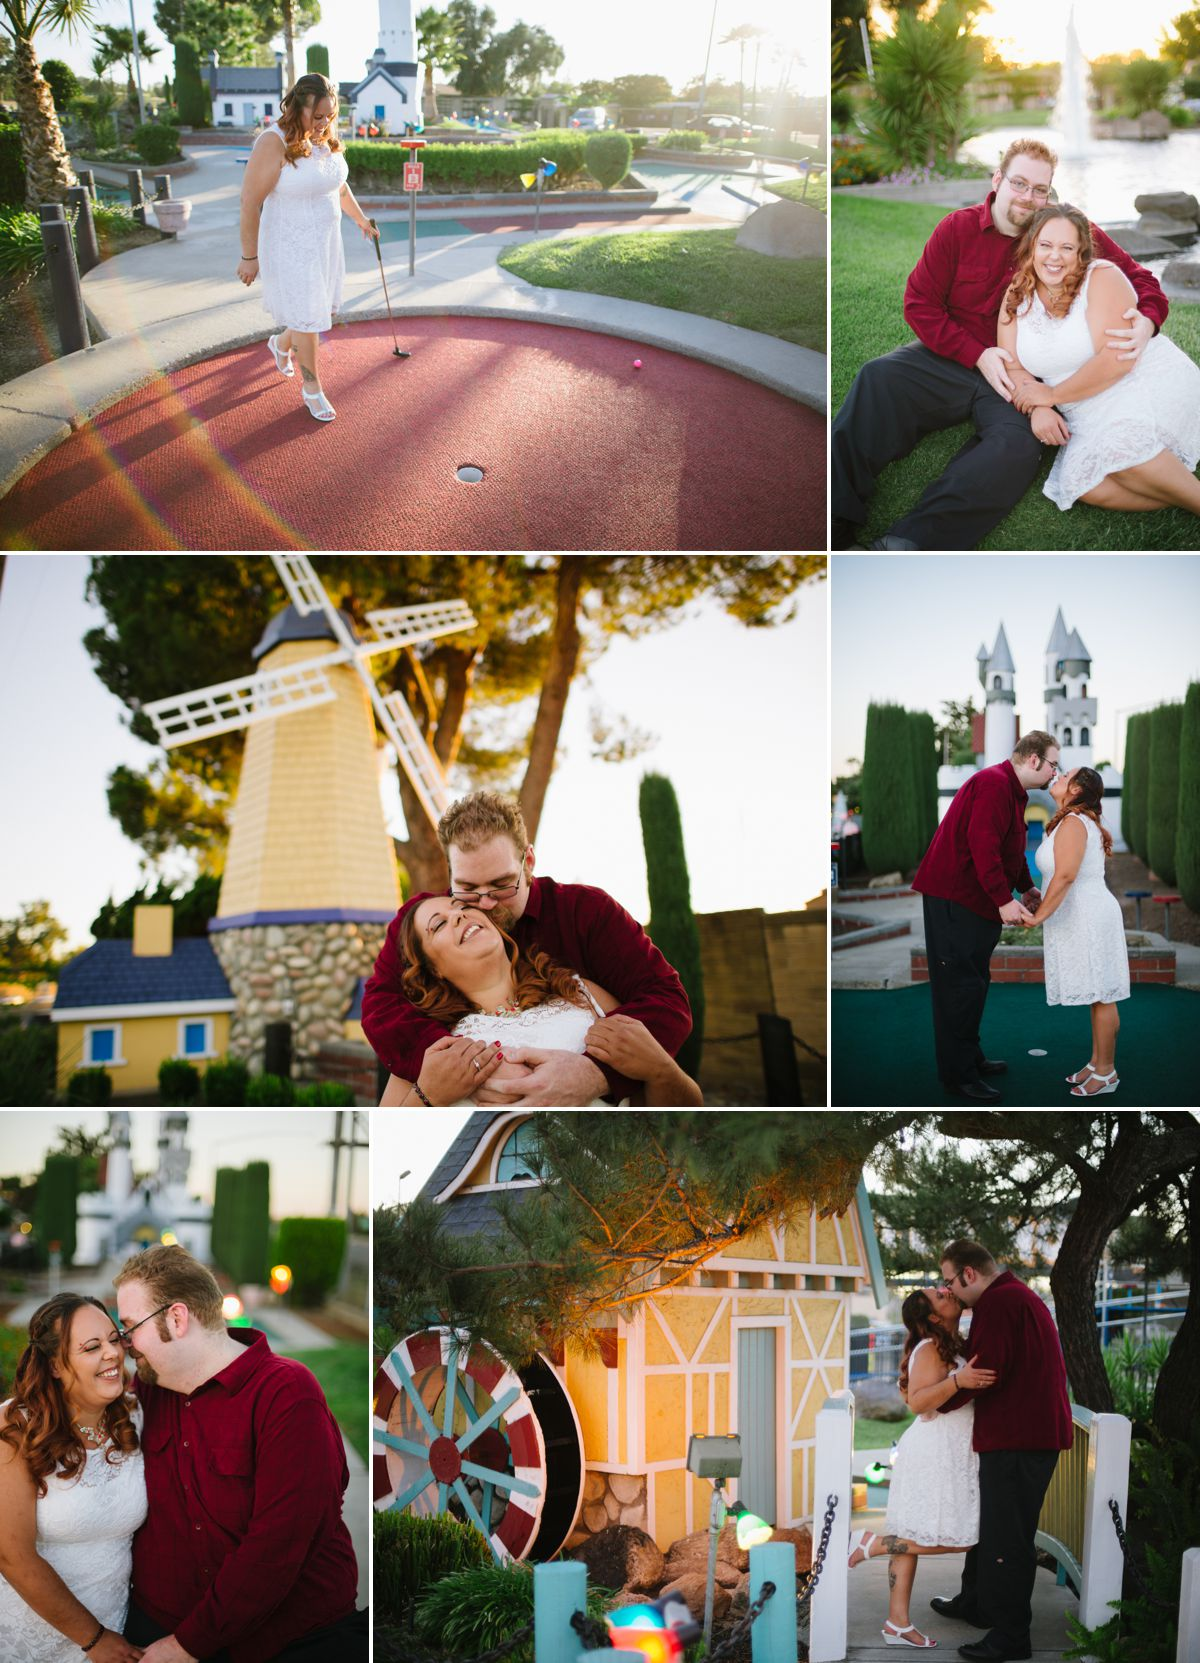 photos from engagement photography session